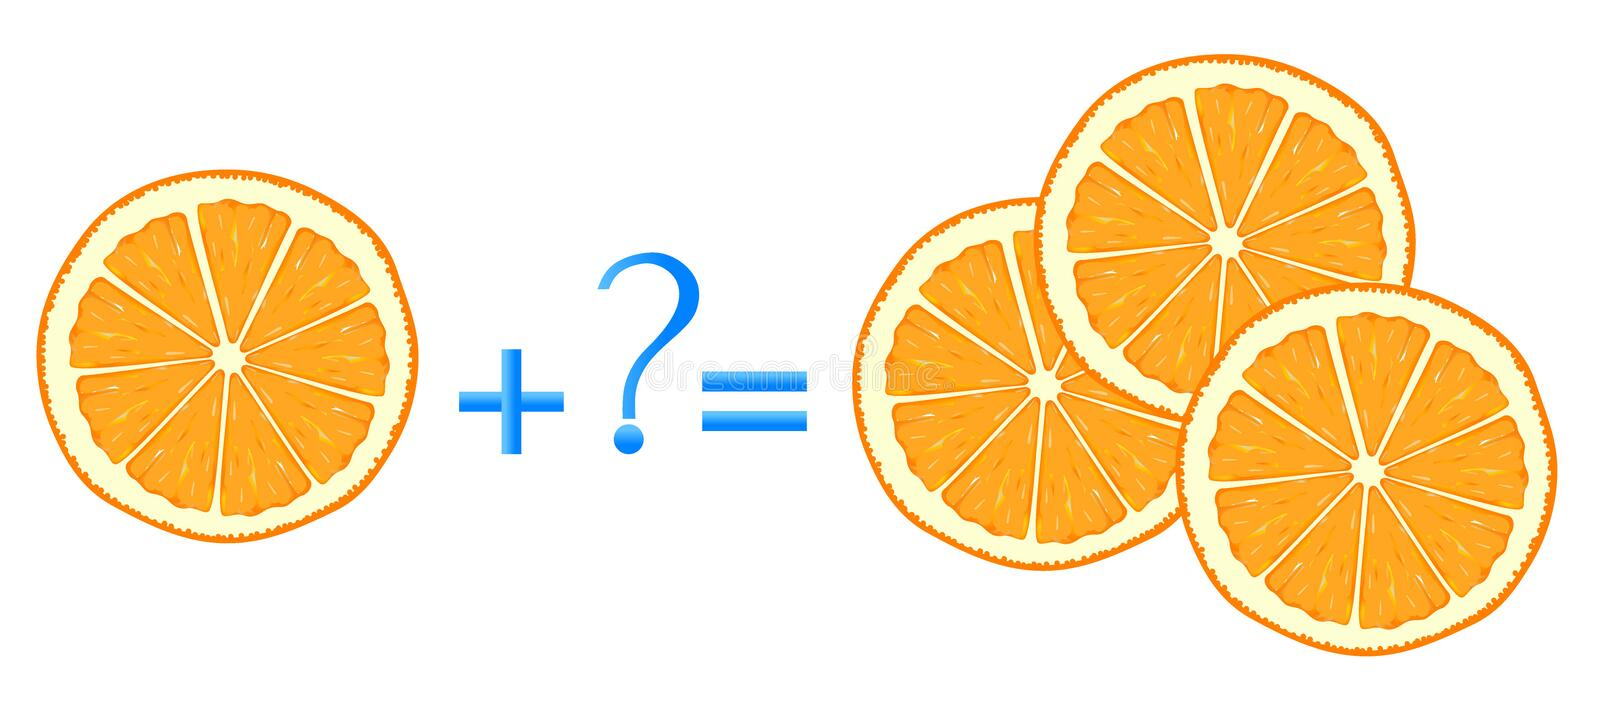 Action relationship of addition, examples with slices of orange. Educational game for children. Action relationship of addition, examples with slices of orange vector illustration